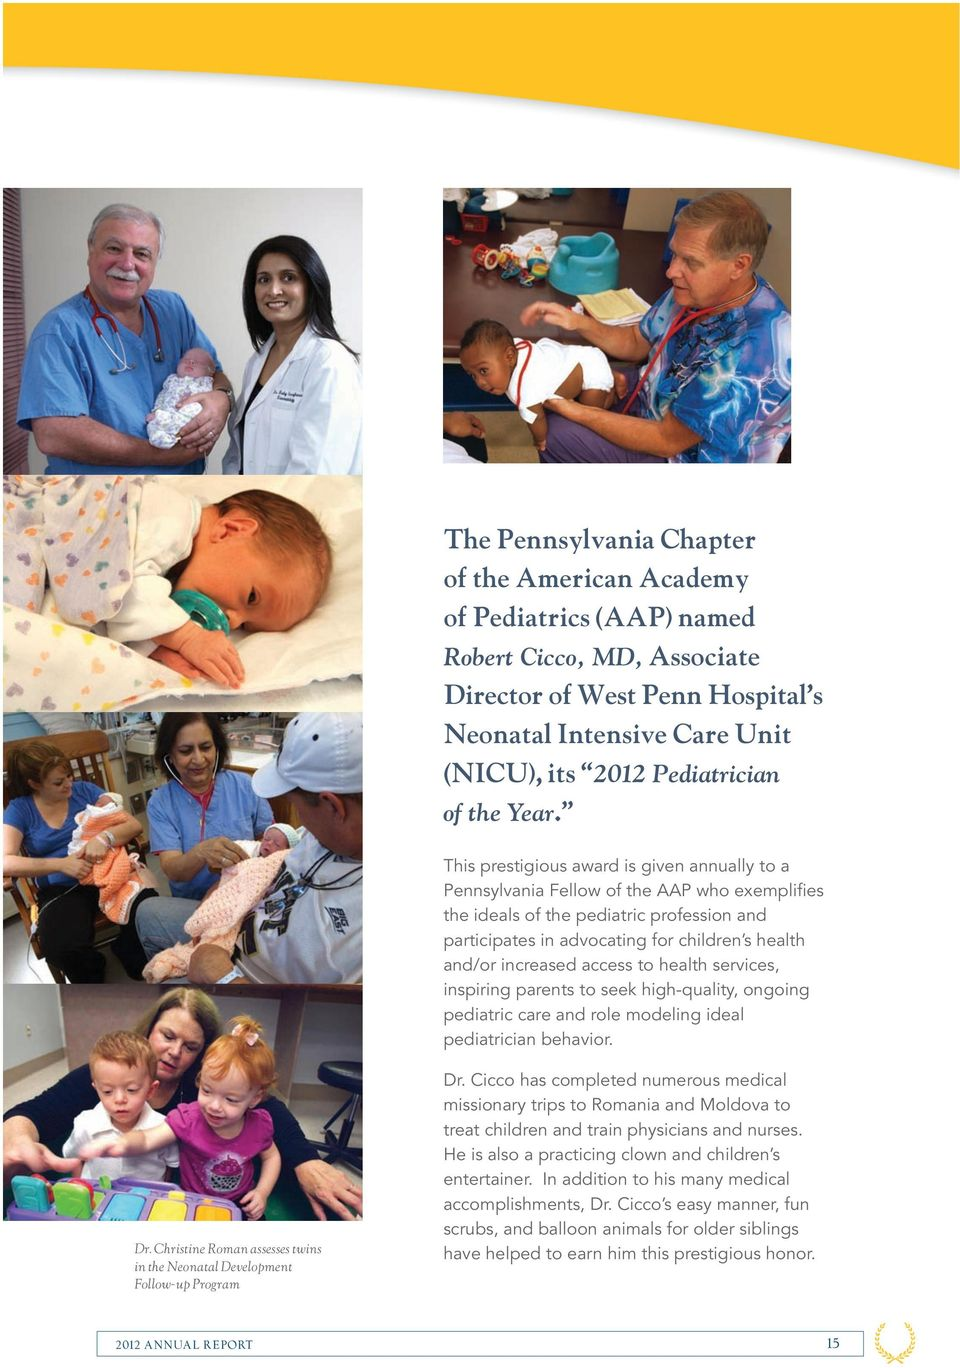 THE WESTERN PENNSYLVANIA HOSPITAL FOUNDATION ANNUAL REPORT - PDF